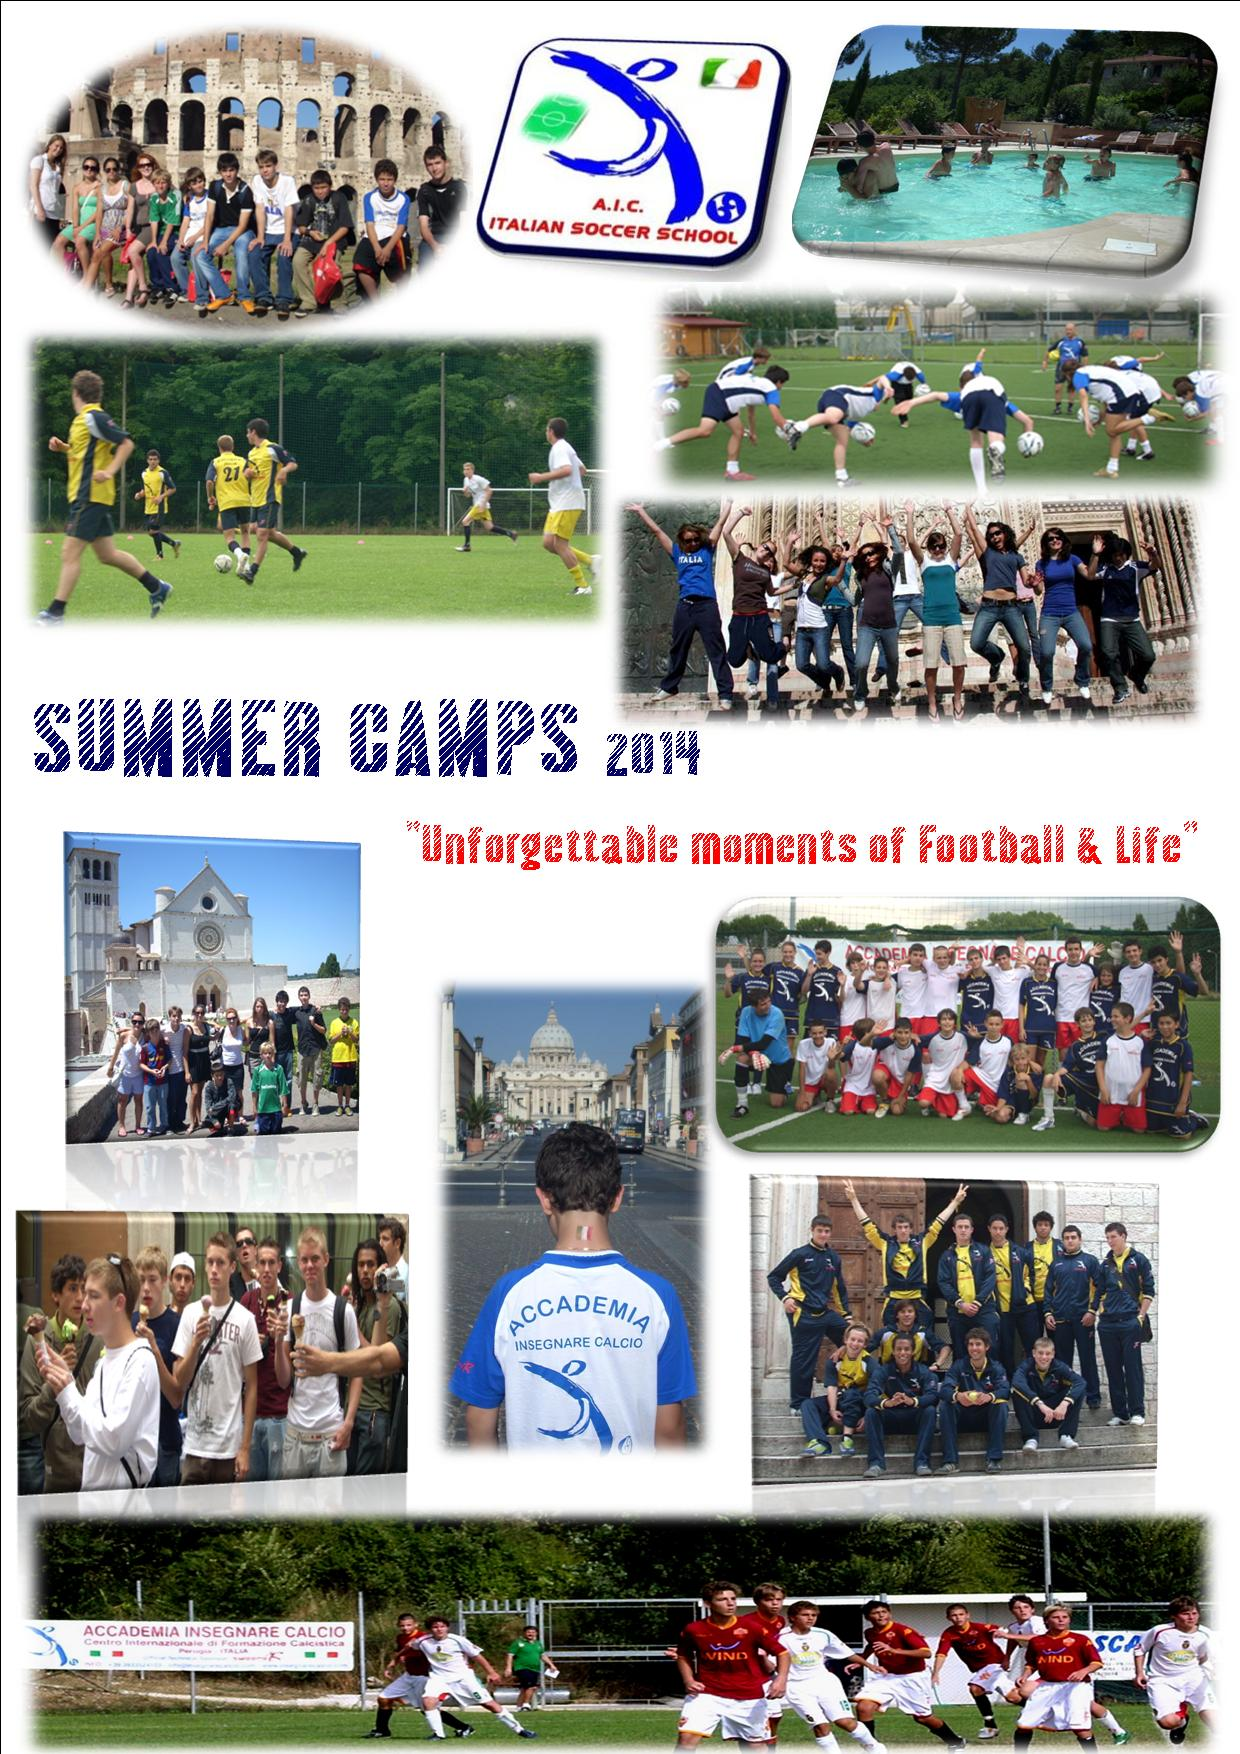 SUMMER CAMPS 2014 - PERUGIA, Italy: dates & services